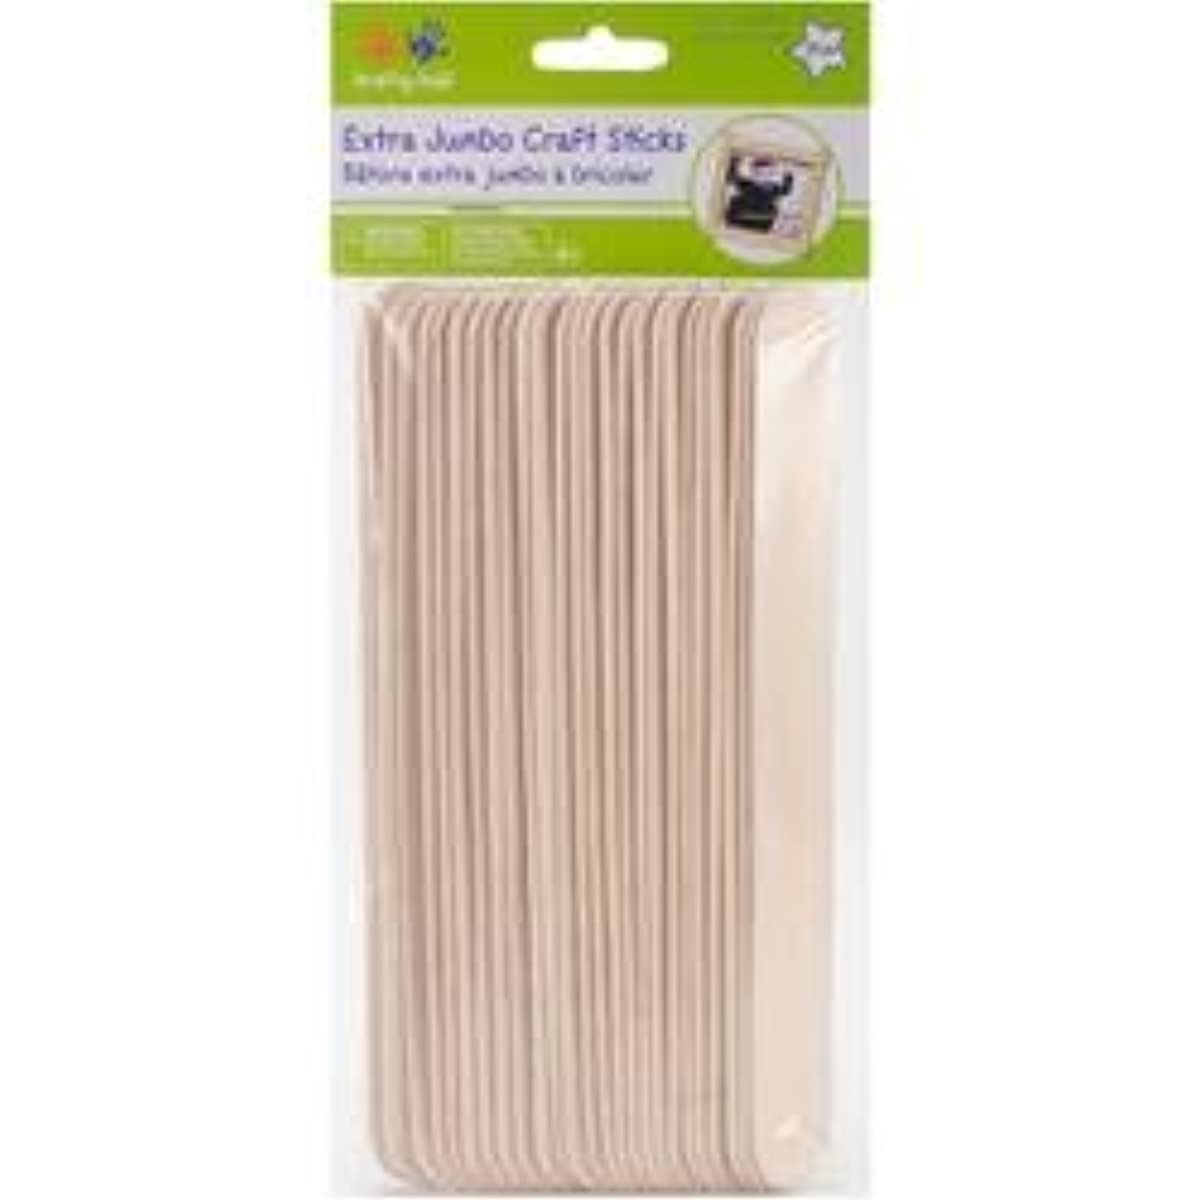 Bulk Buy: MultiCraft Imports (6-Pack) Extra Jumbo Craft Sticks Natural 7.875in. x .8in. 25/Pkg CW507